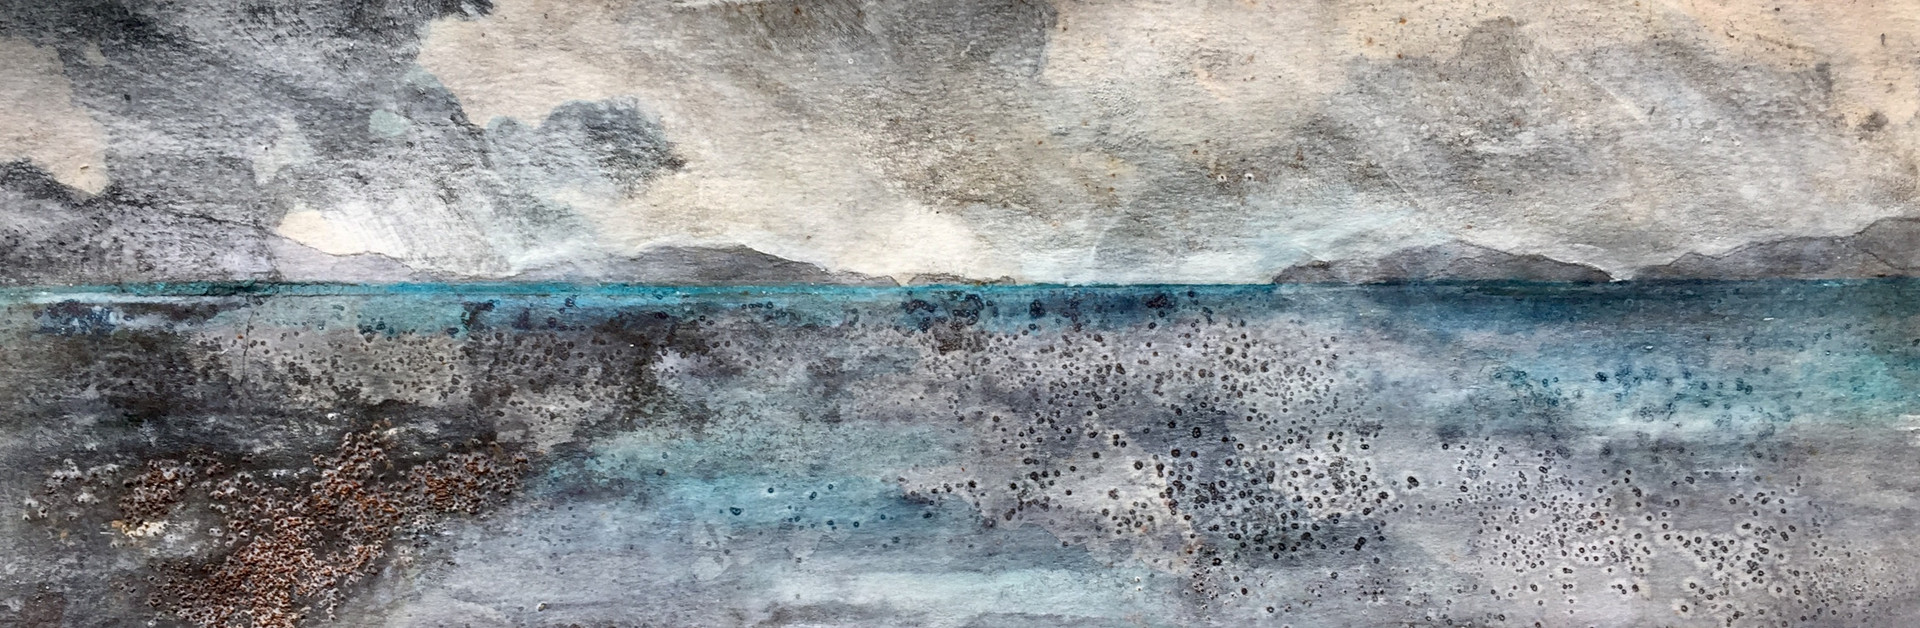 Summer Isles, Storm Approaching